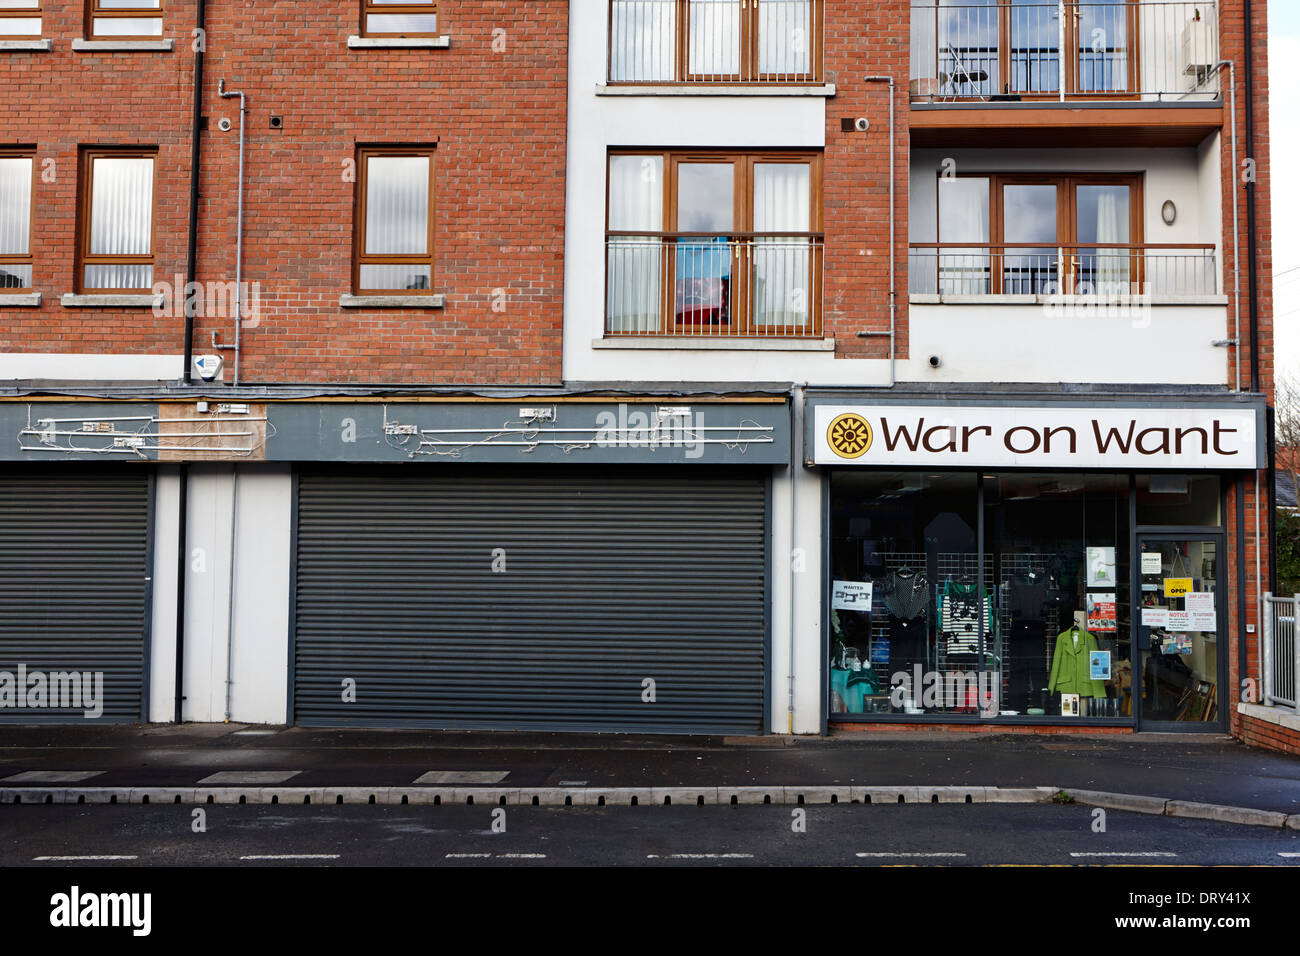 war on want charity shop next to closed shop on high street dunmurry belfast uk - Stock Image